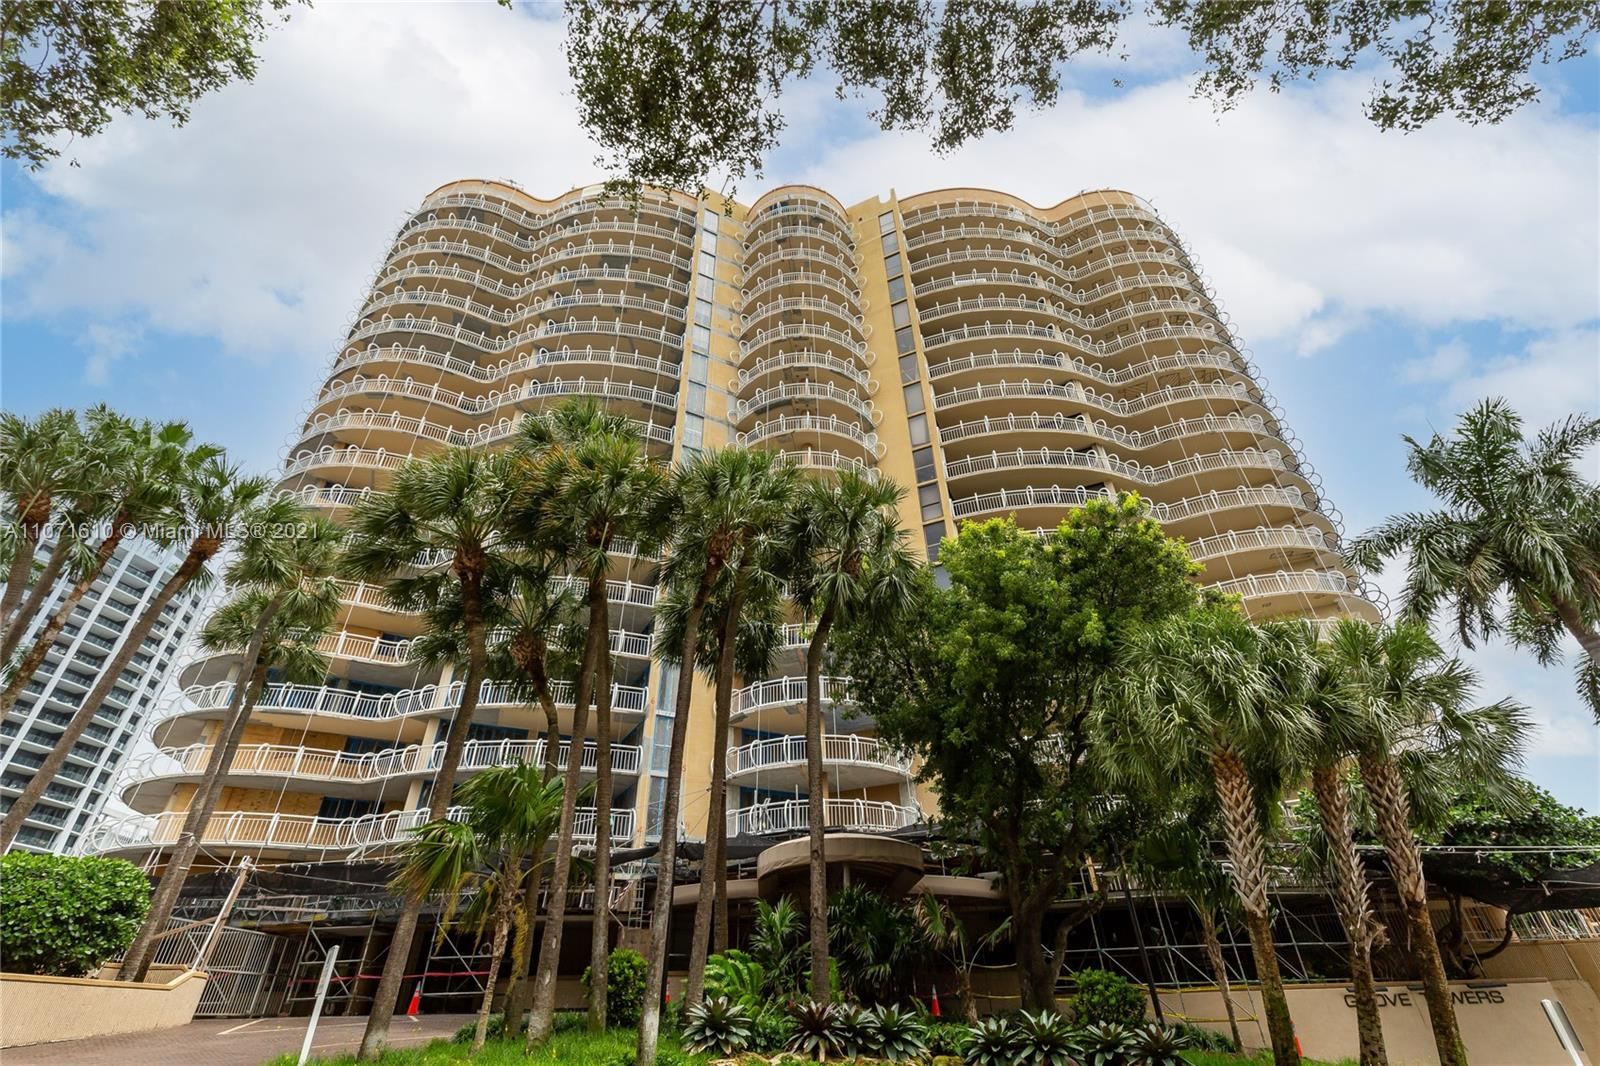 Upgraded High Impact doors lead you to spacious balconies for additional outdoor living. In the middle of the famous Coconut Grove restaurant district.Local Yacht clubs host many world class regattas attracting Sailors both domestic and international. Just in front of crystal  Blue Biscayne Bay walk to the new Regatta Park,Brand new Coco walk The Grove is a serene lush oasis with  chic shops  The area's several green spaces include bay-front Barnacle Historic State Park, home to a mangrove forest, and the iconic Vizcaya Museum and Gardens, centered on a lavish Italian-style villa.   The Building is currently undergoing an extensive restoration which will result in a spectacular (like new) Building.. Full time concierge, valet parking,fitness center,pool,bike storage and tennis courts